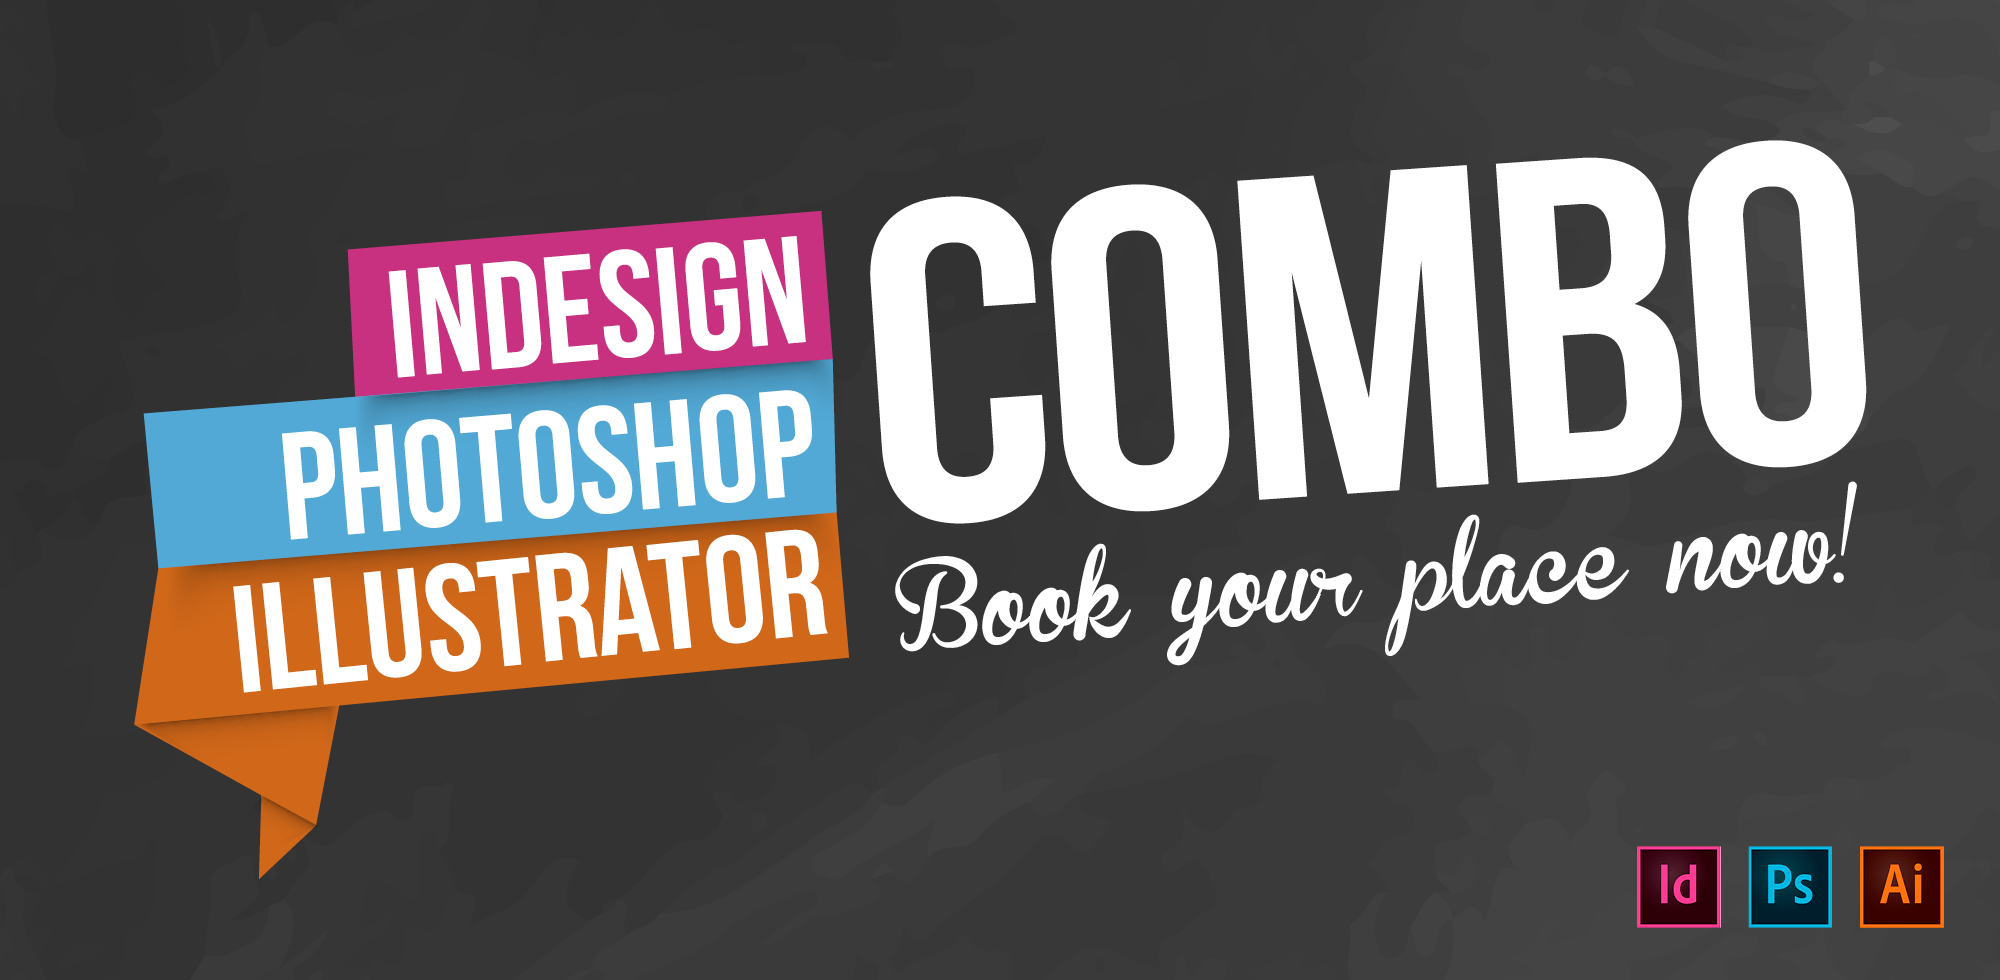 InDesign, Photoshop & Illustrator combo course